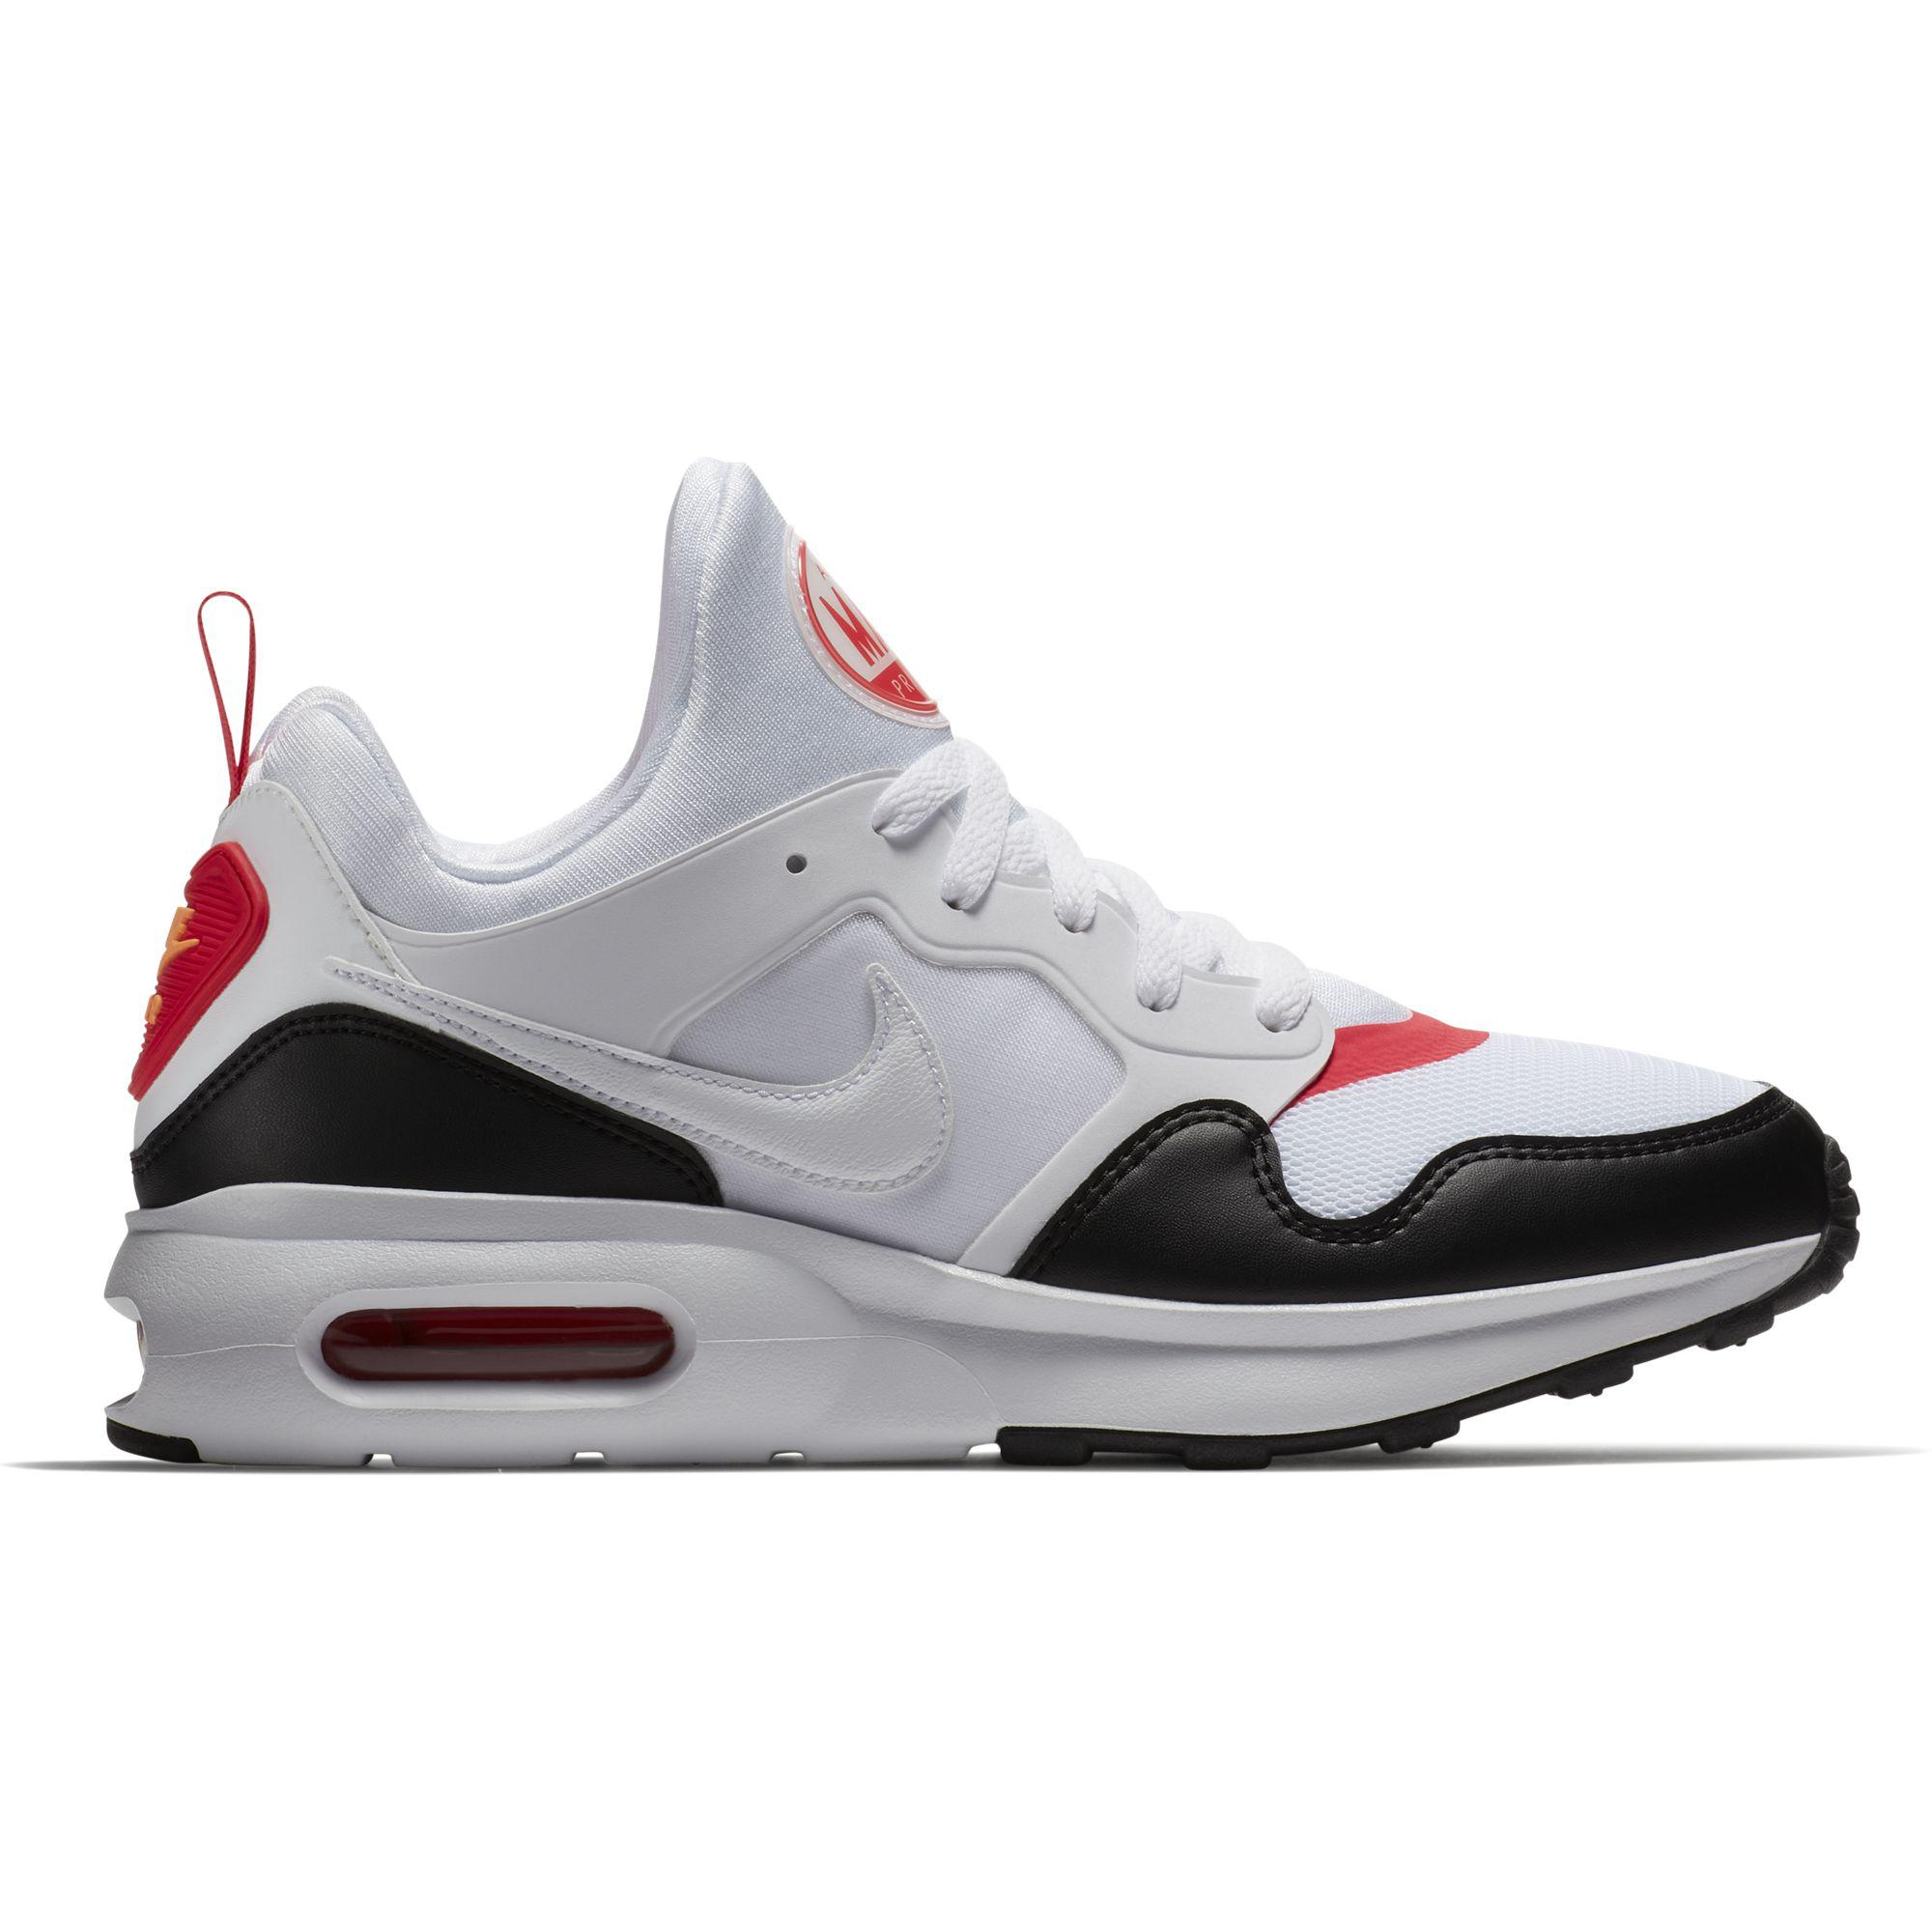 finest selection c70ed 2bfd3 Nike Mens Air Max Prime Shoes - White Siren Red Black - Tennisnuts.com